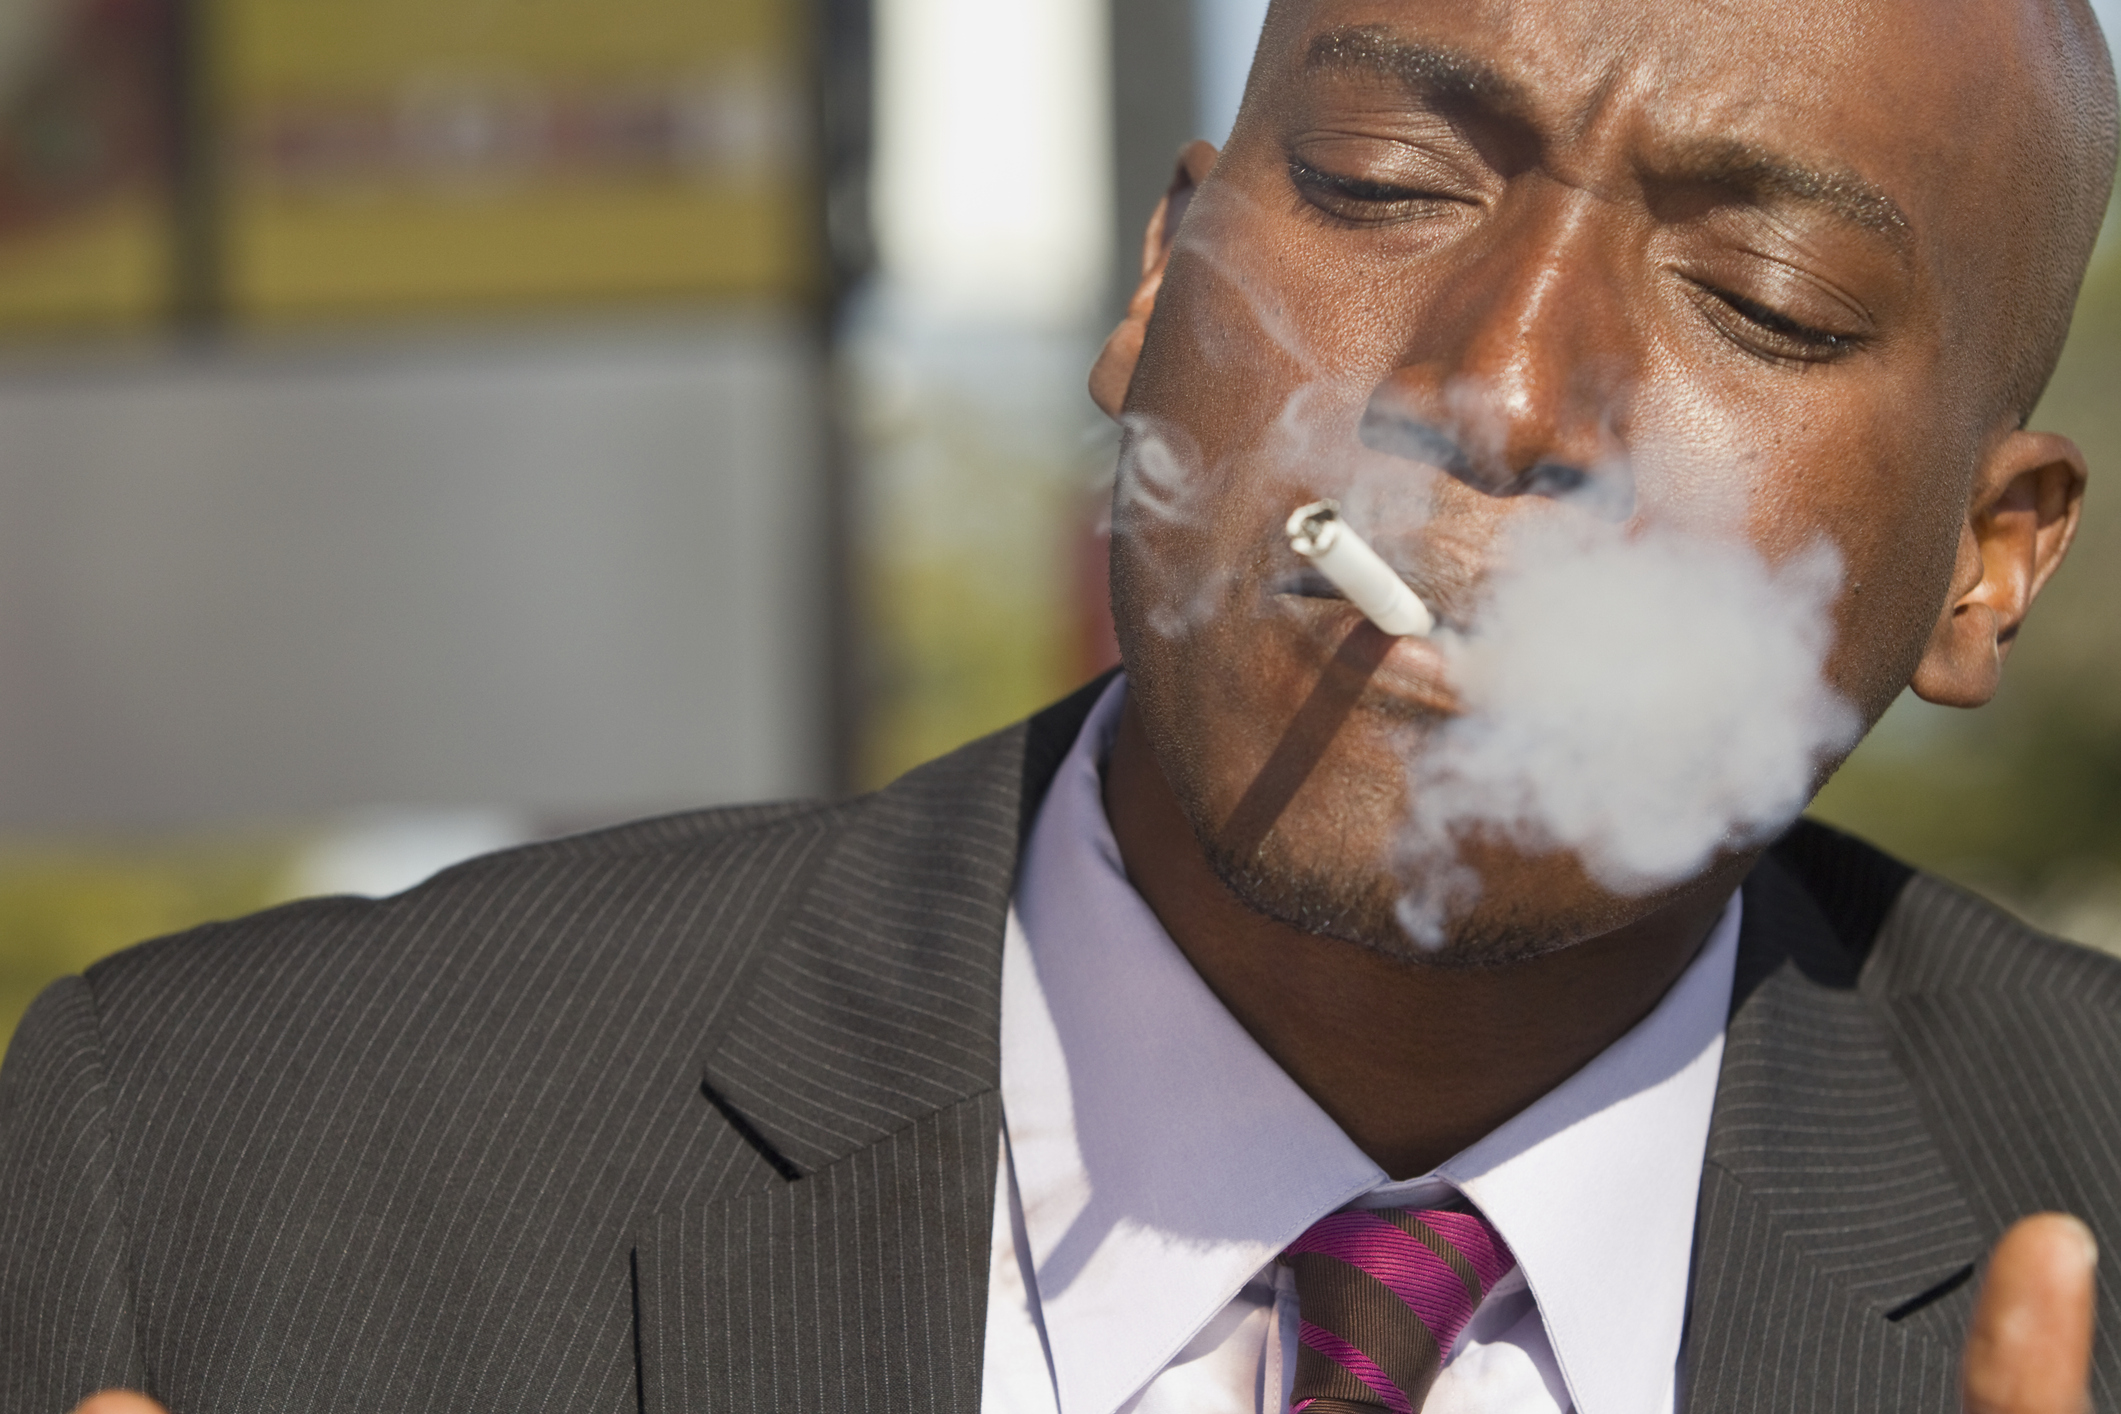 No Ifs, Ands, or Butts: Black People Shouldnt Smoke